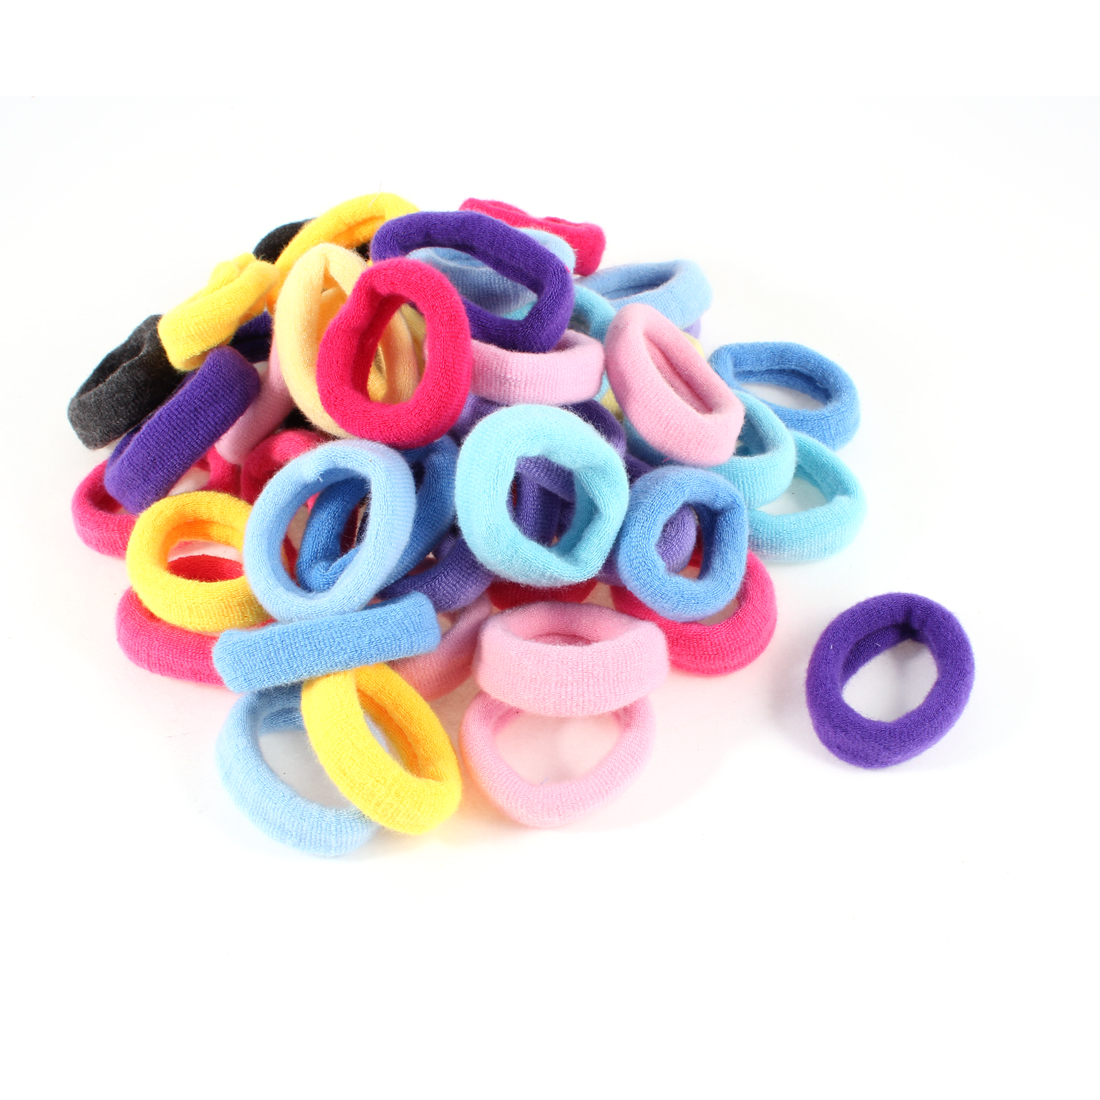 50 Pcs DIY Hairstyle Black Pink Yellow Elastic Hair Ties Ponytail Holder